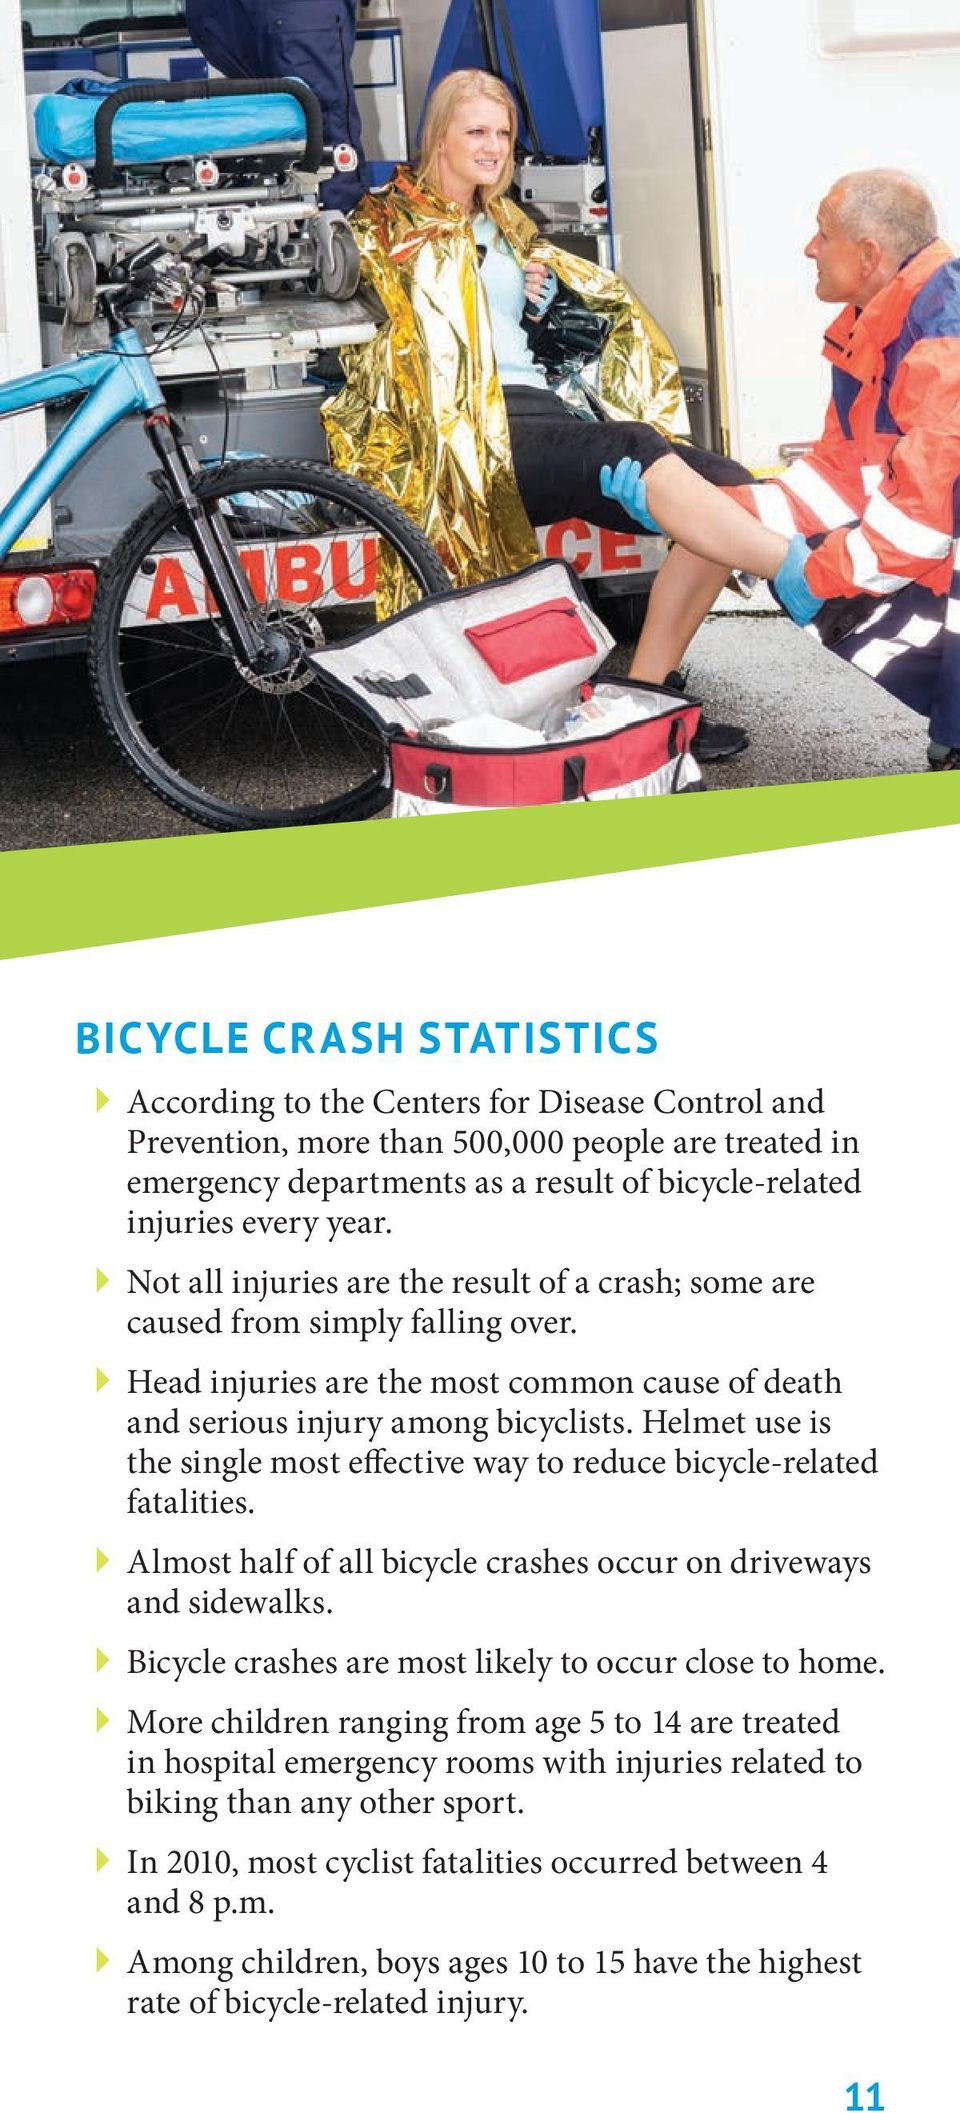 Helmet use is the single most effective way to reduce bicycle-related fatalities. Almost half of all bicycle crashes occur on driveways and sidewalks.